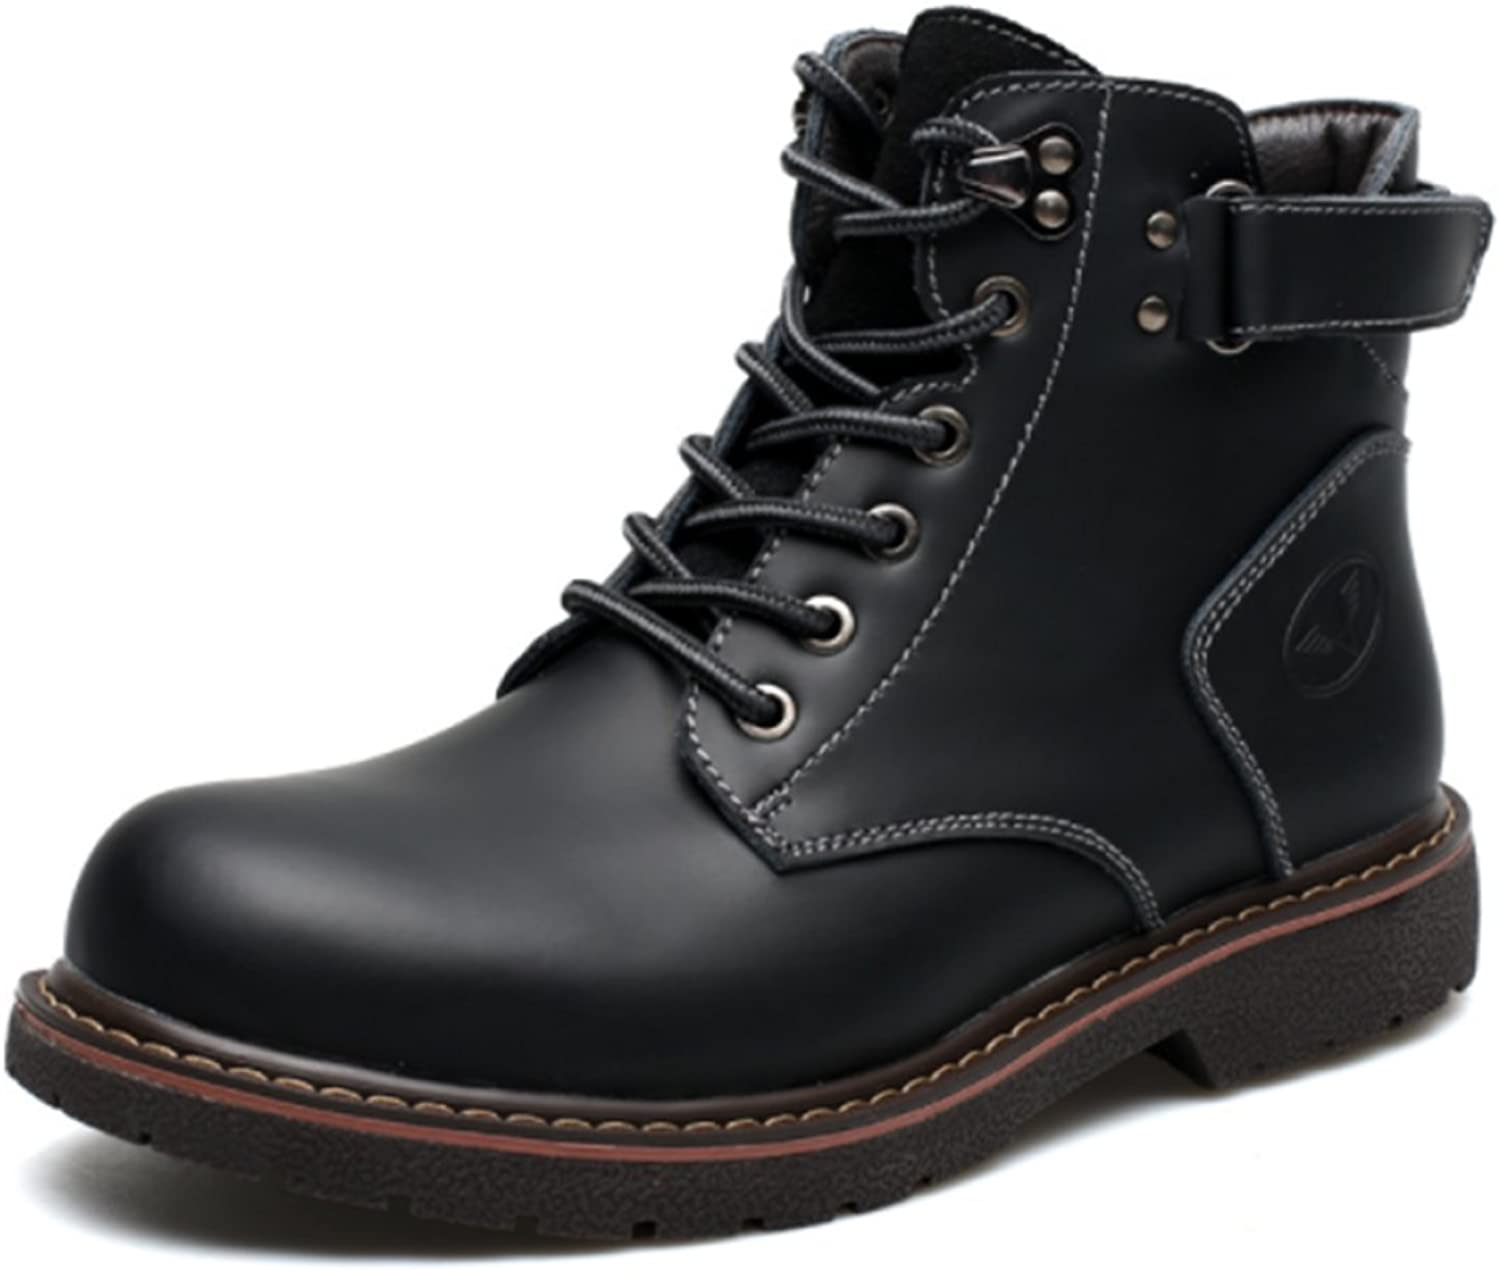 2017 New Men's Martin Boots Casual Mid Boots Non - Slip Comfort Cowhide Retro Hiking Military Tactical shoes